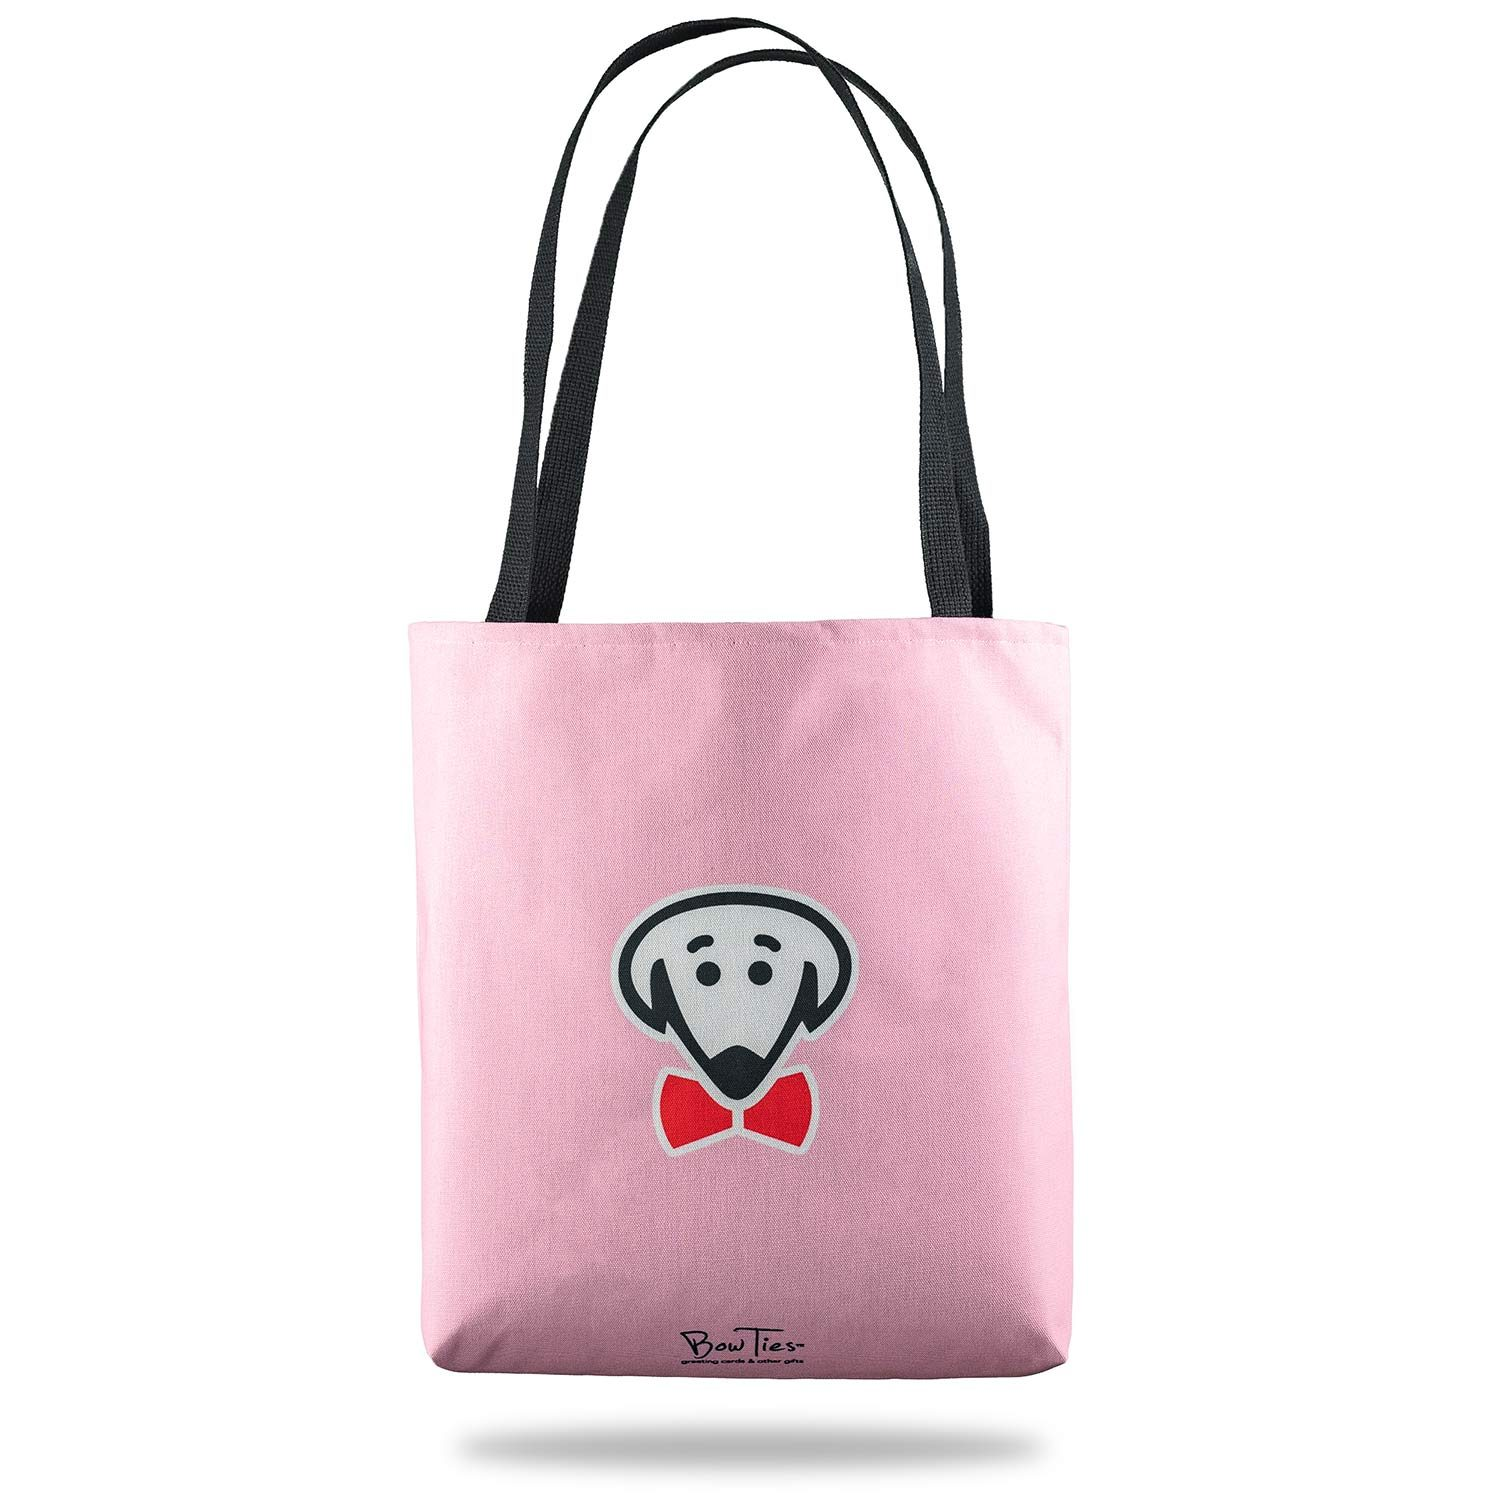 'A.D.D.' tote by Beau Tyler in pink